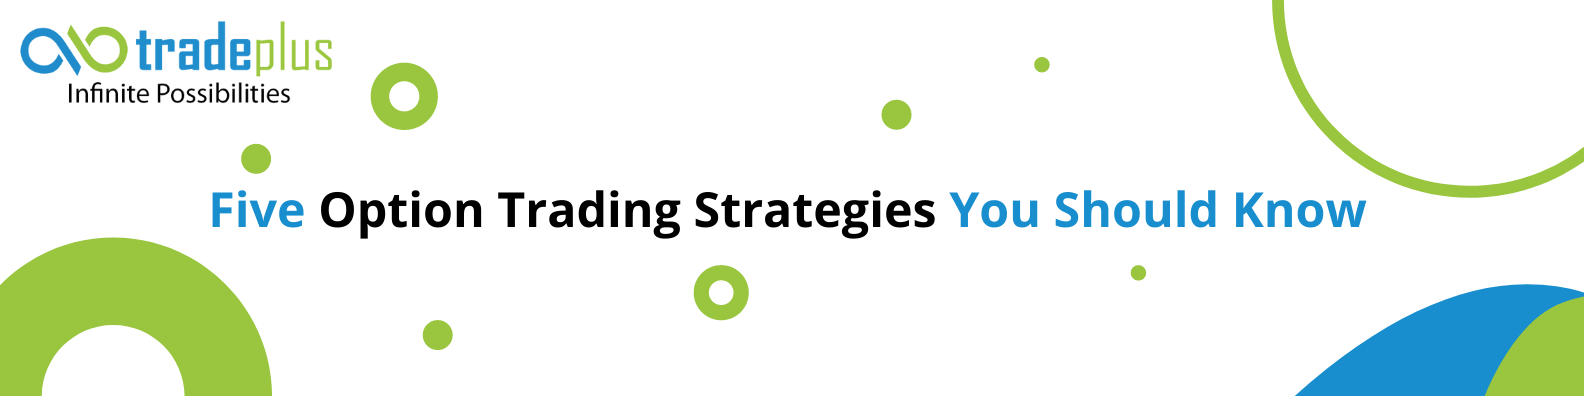 5 option trading strategies you should know 5 Option Trading Strategies You Should Know